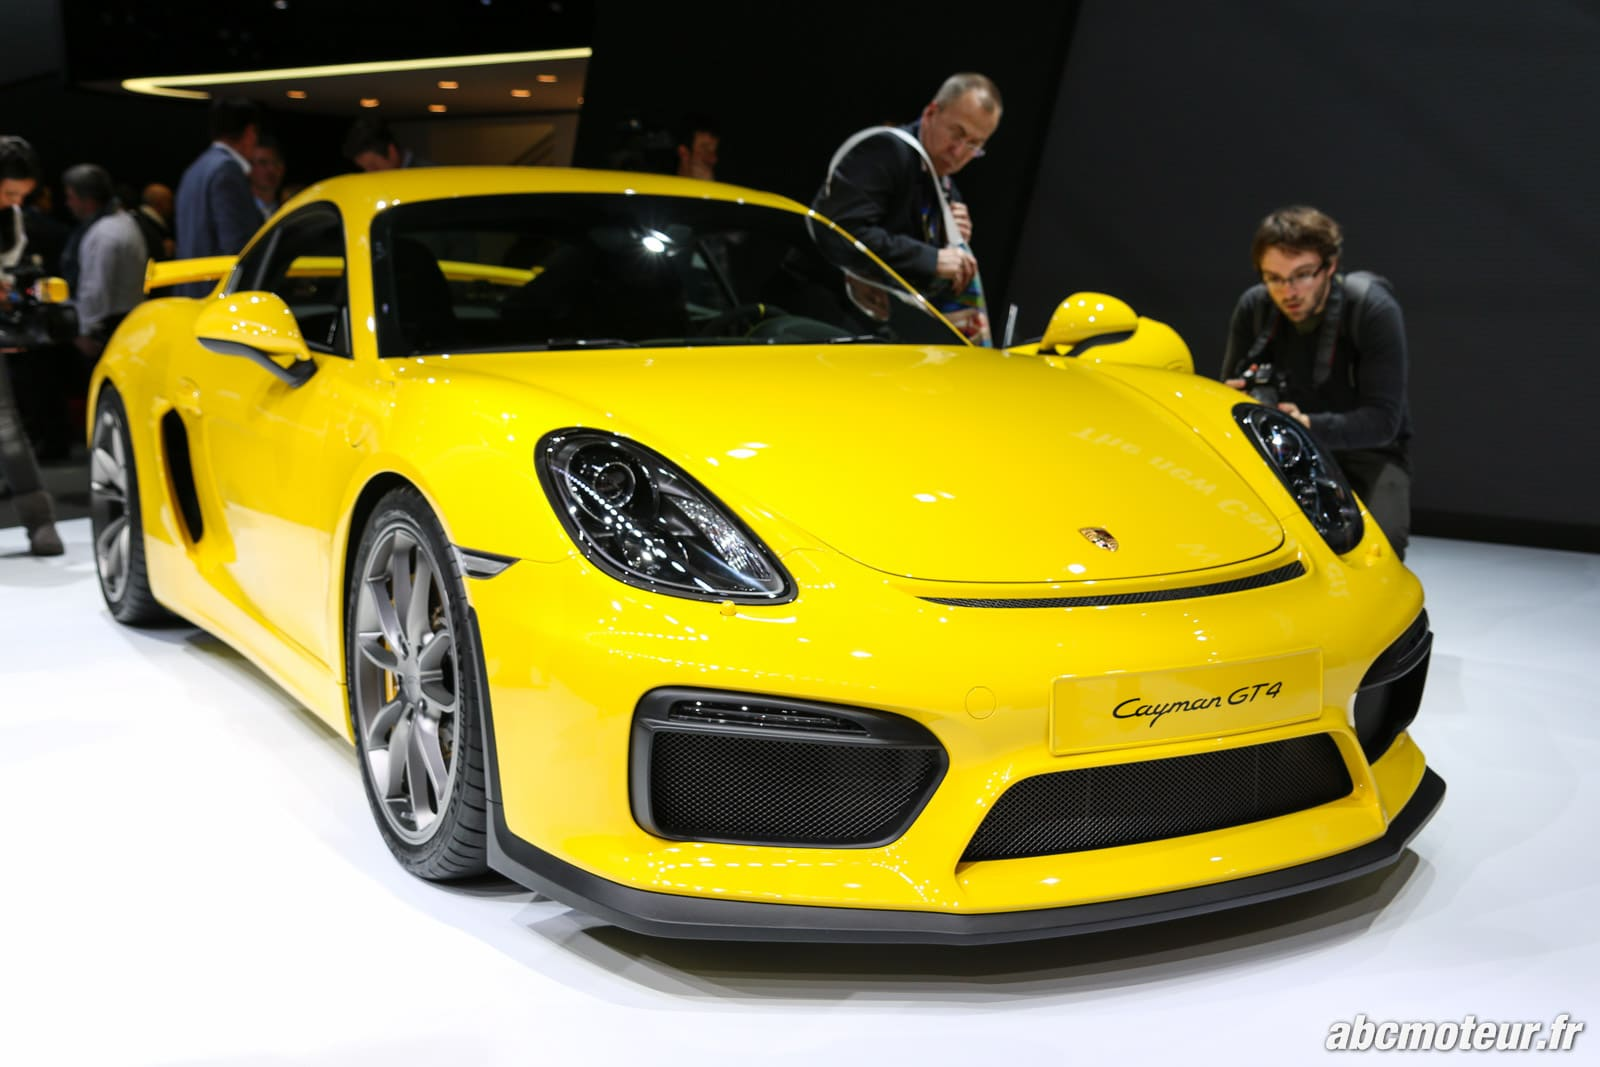 Nos photos du plus radical des Porsche Cayman, le GT4 !